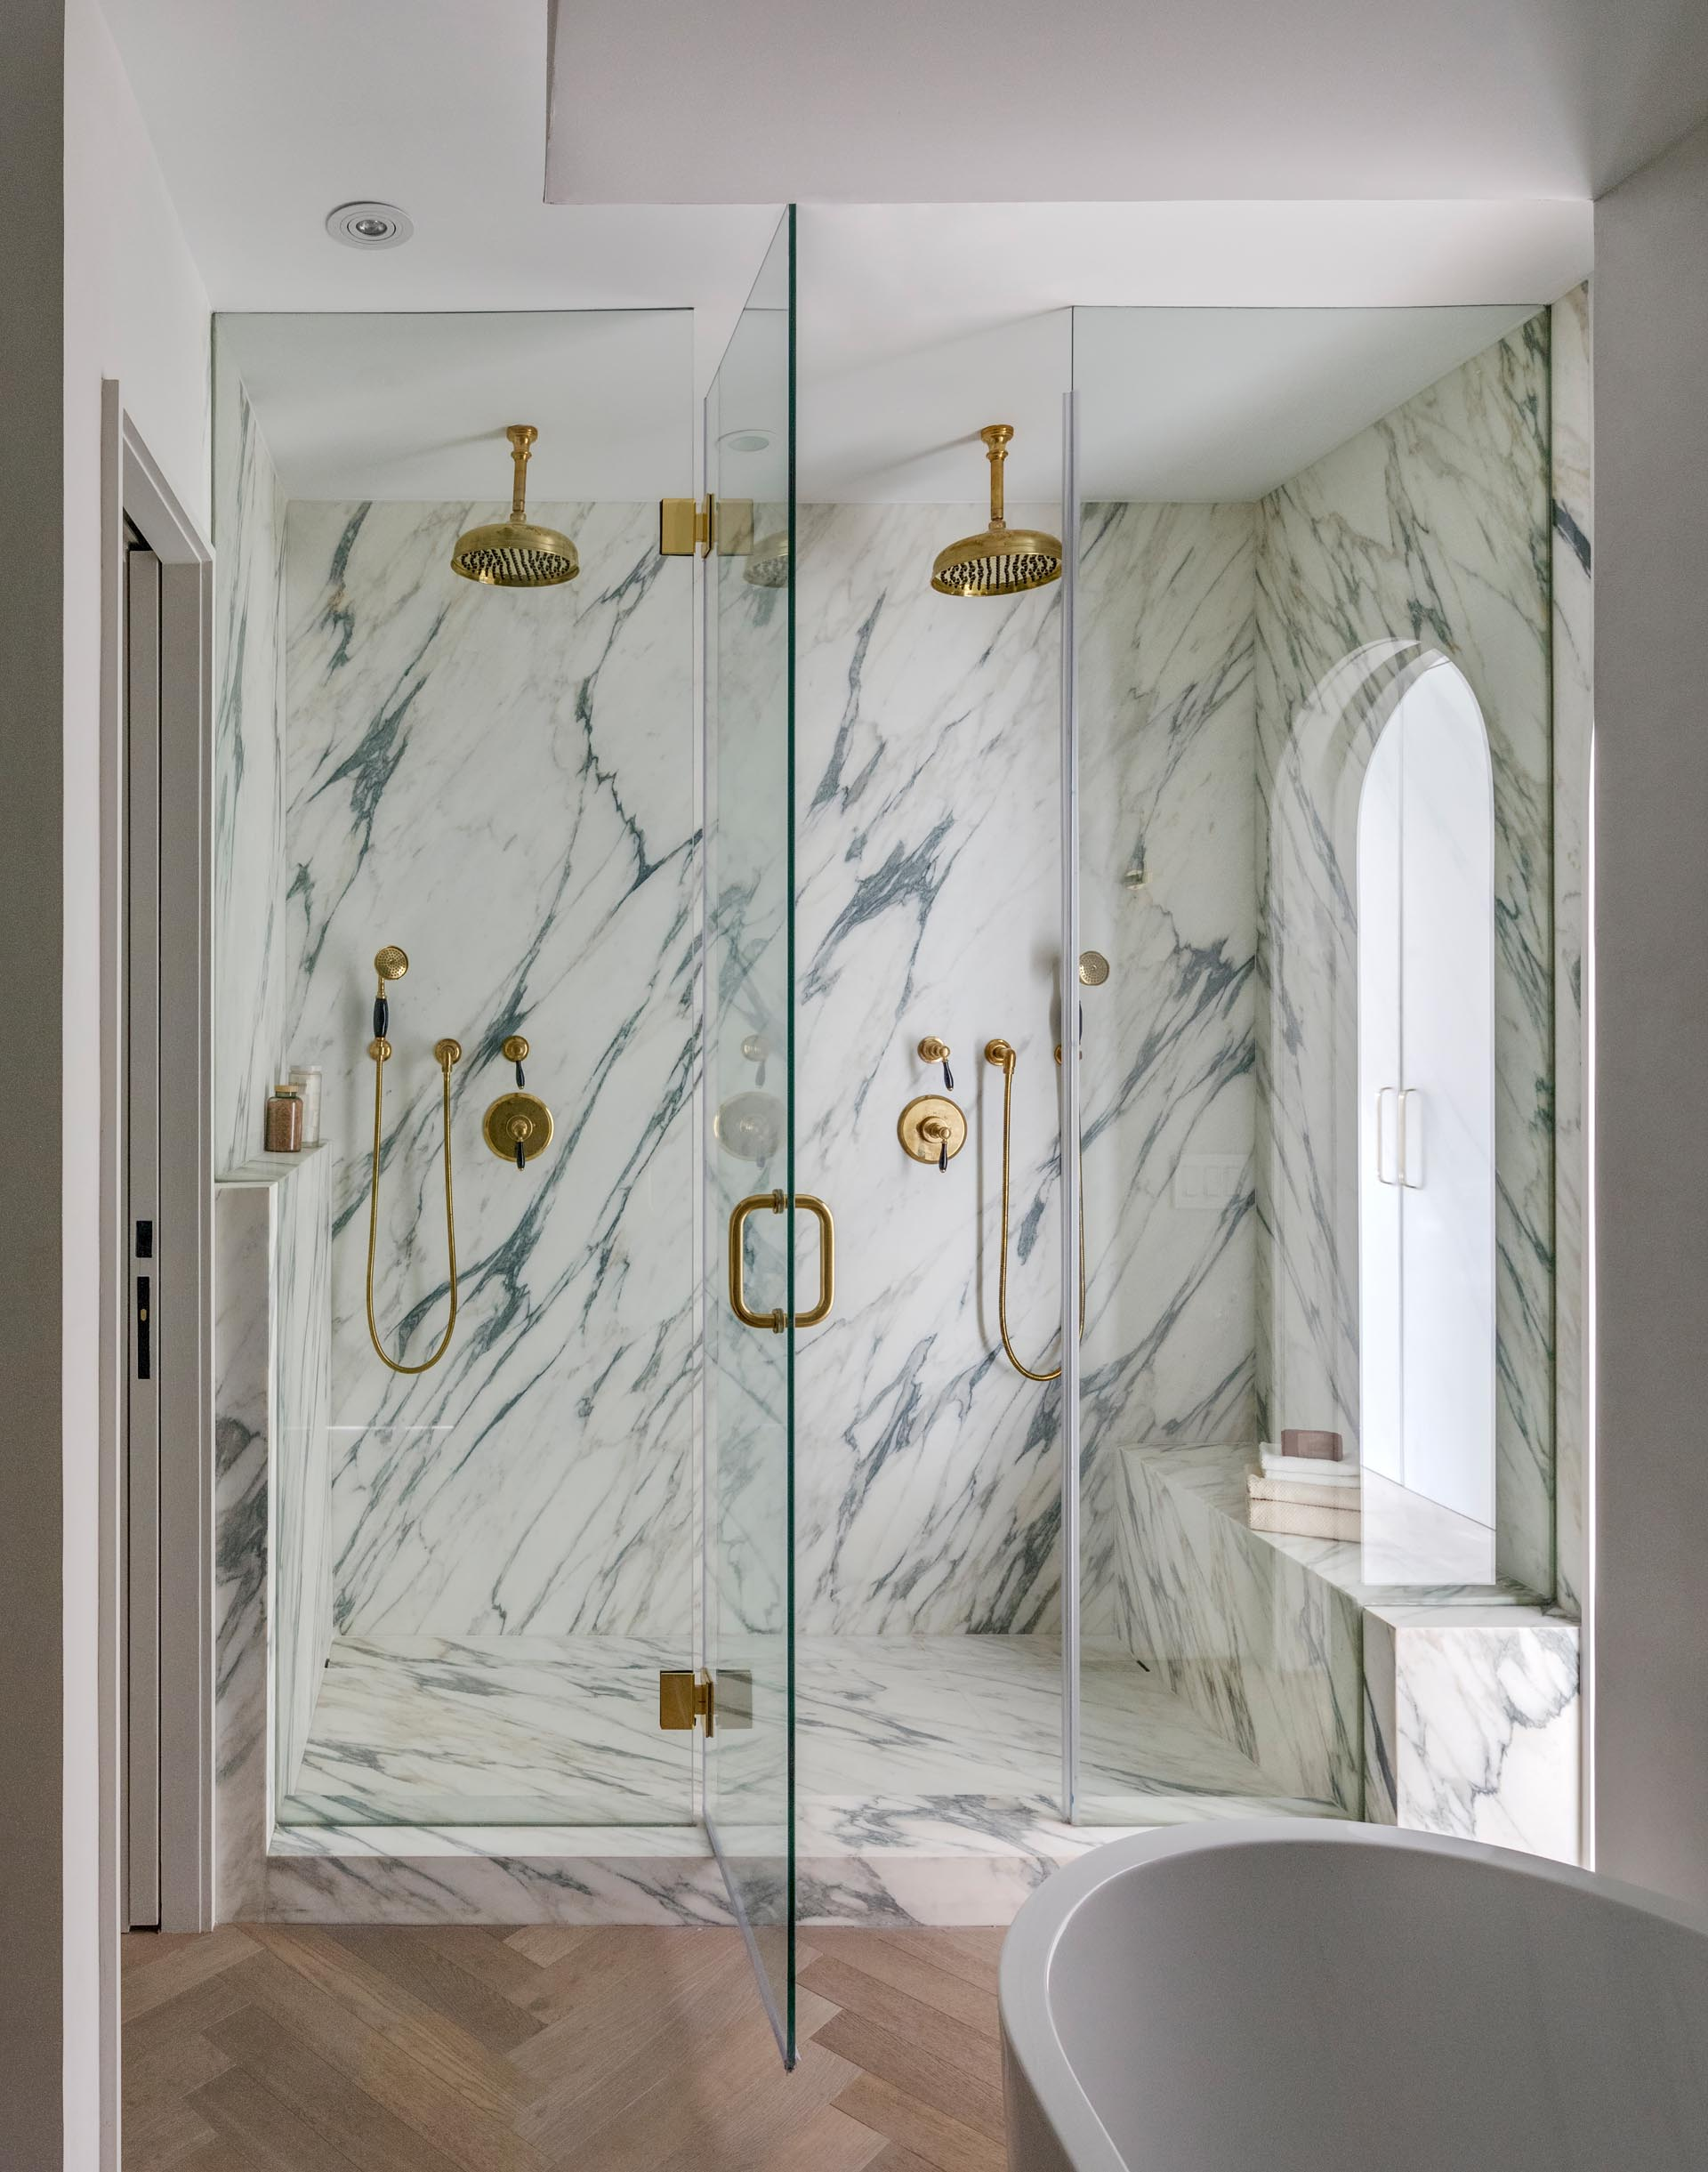 A modern walk-in shower with gold hardware, two shower heads, a glass shower screen and door, and a built-in bench.